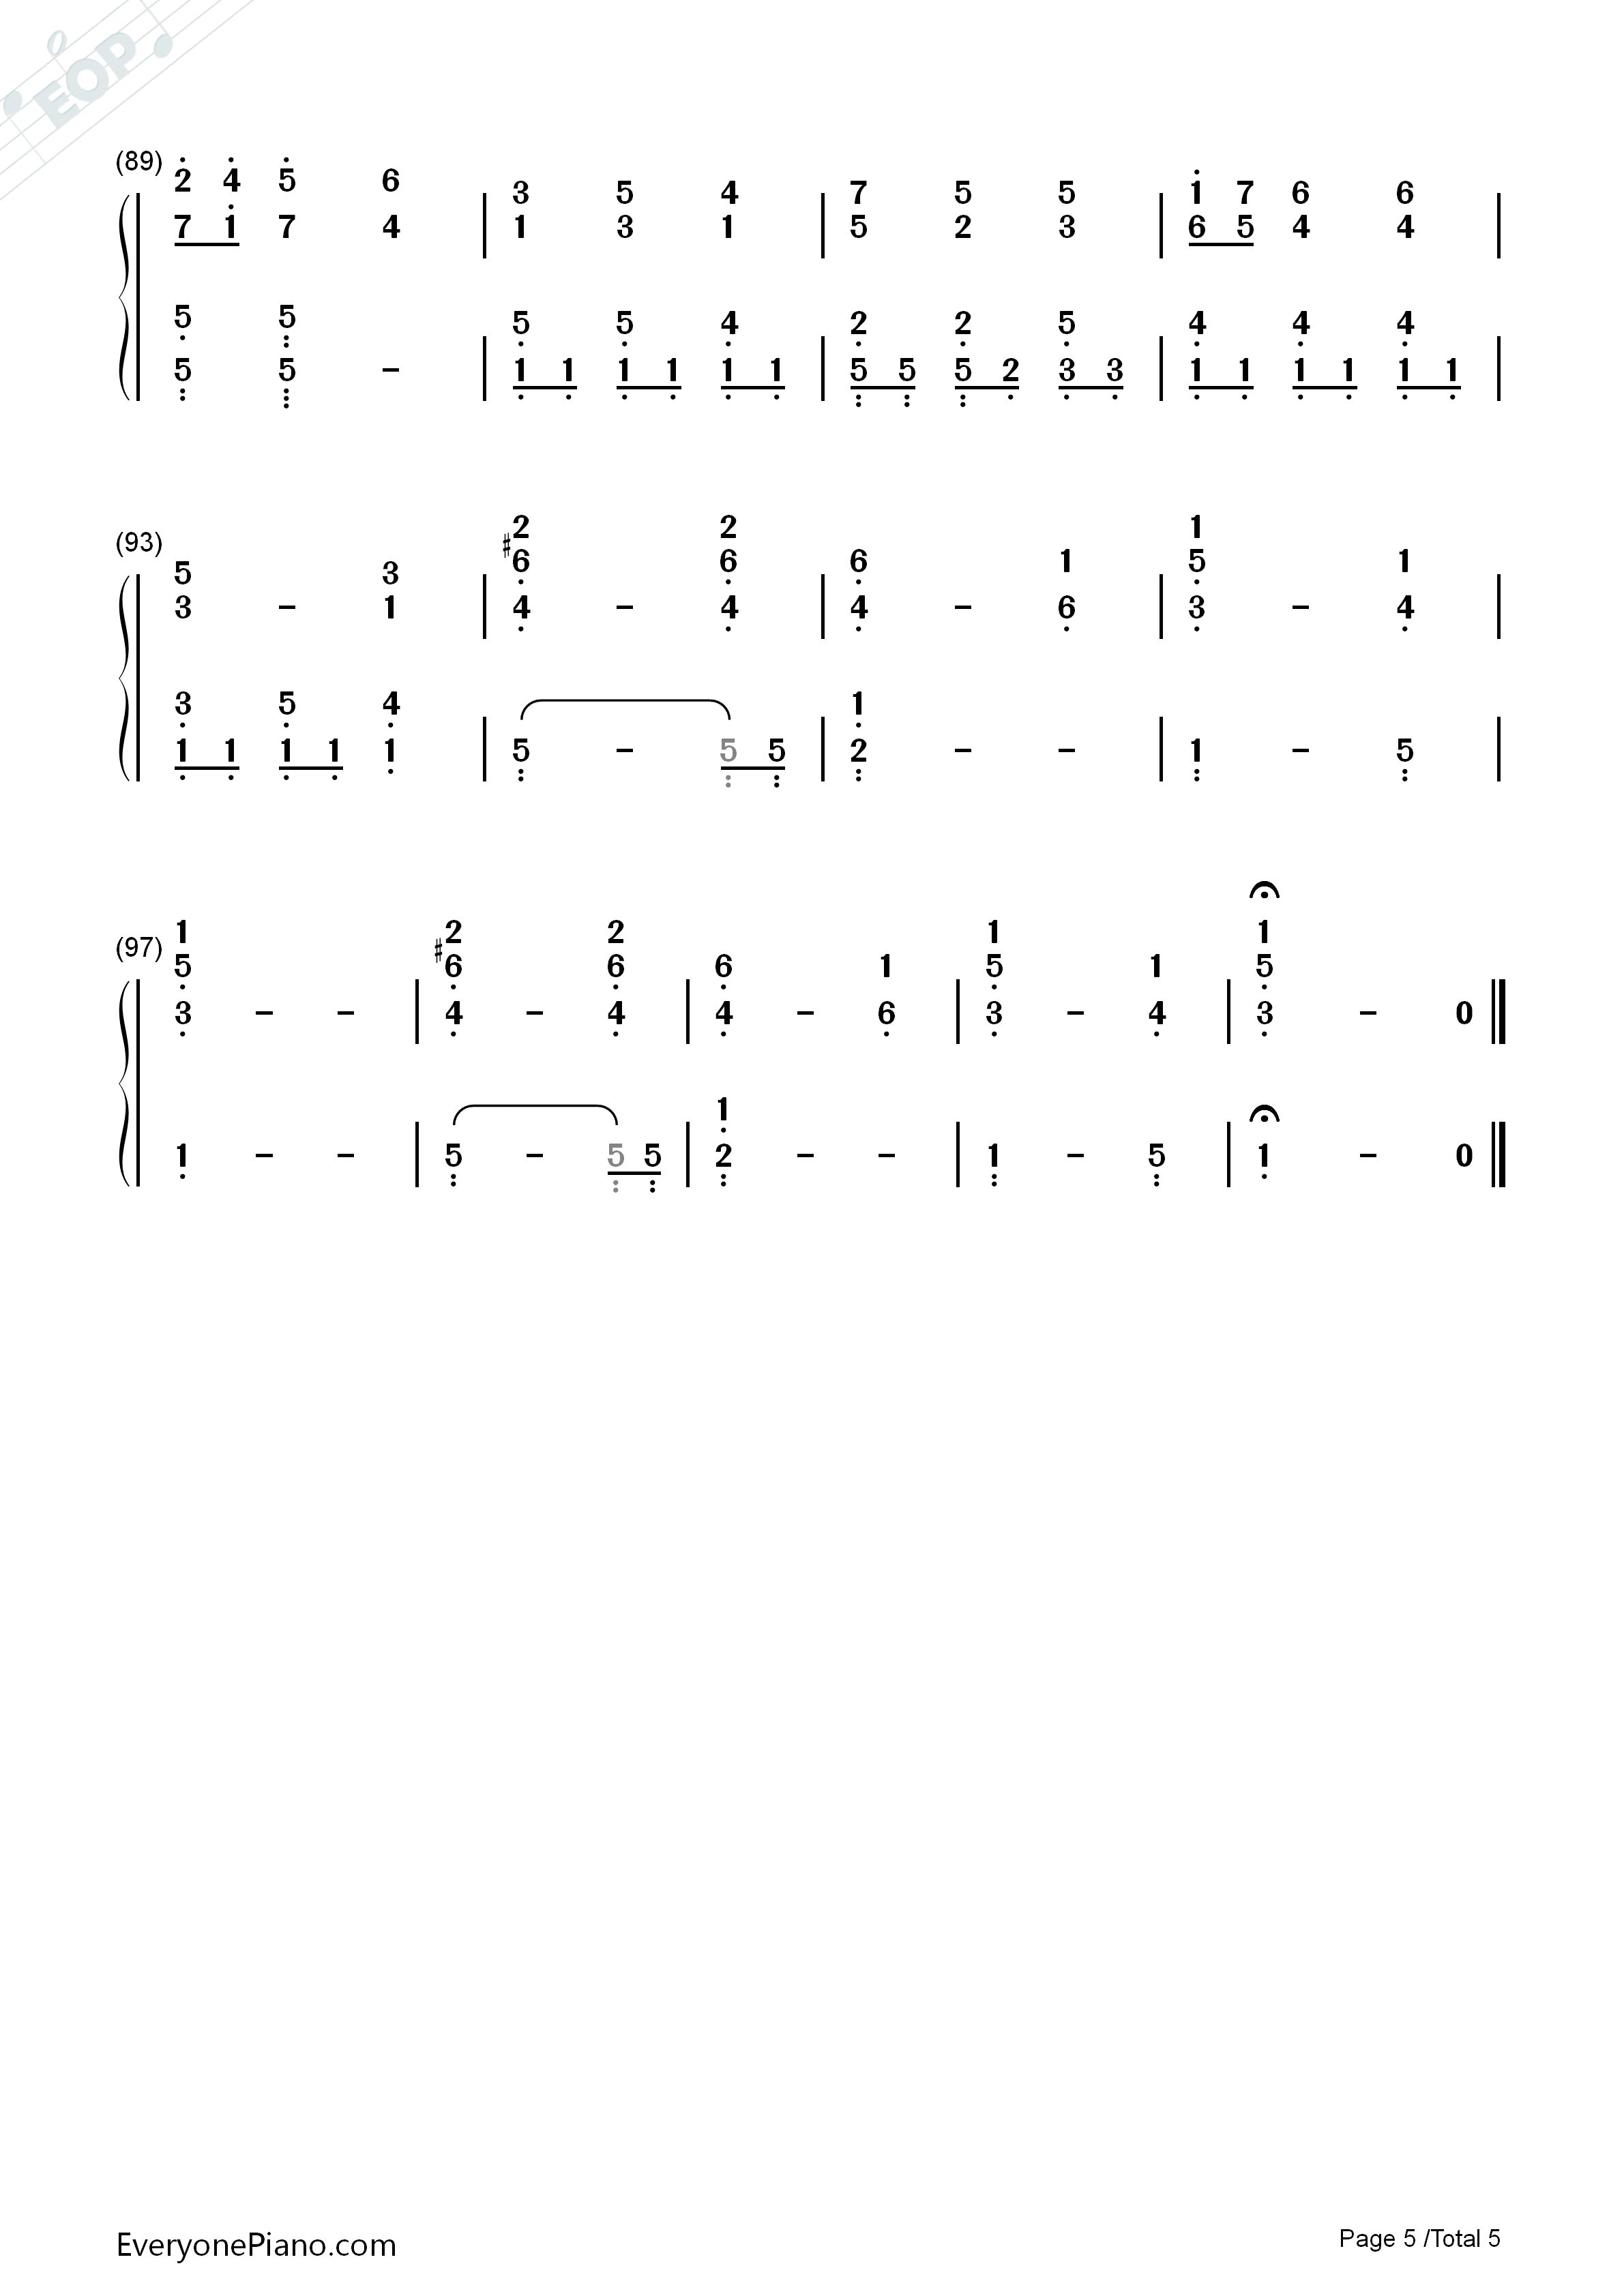 In christ alone owl city numbered musical notation preview 5 free listen now print sheet in christ alone owl city numbered musical notation preview 5 hexwebz Images